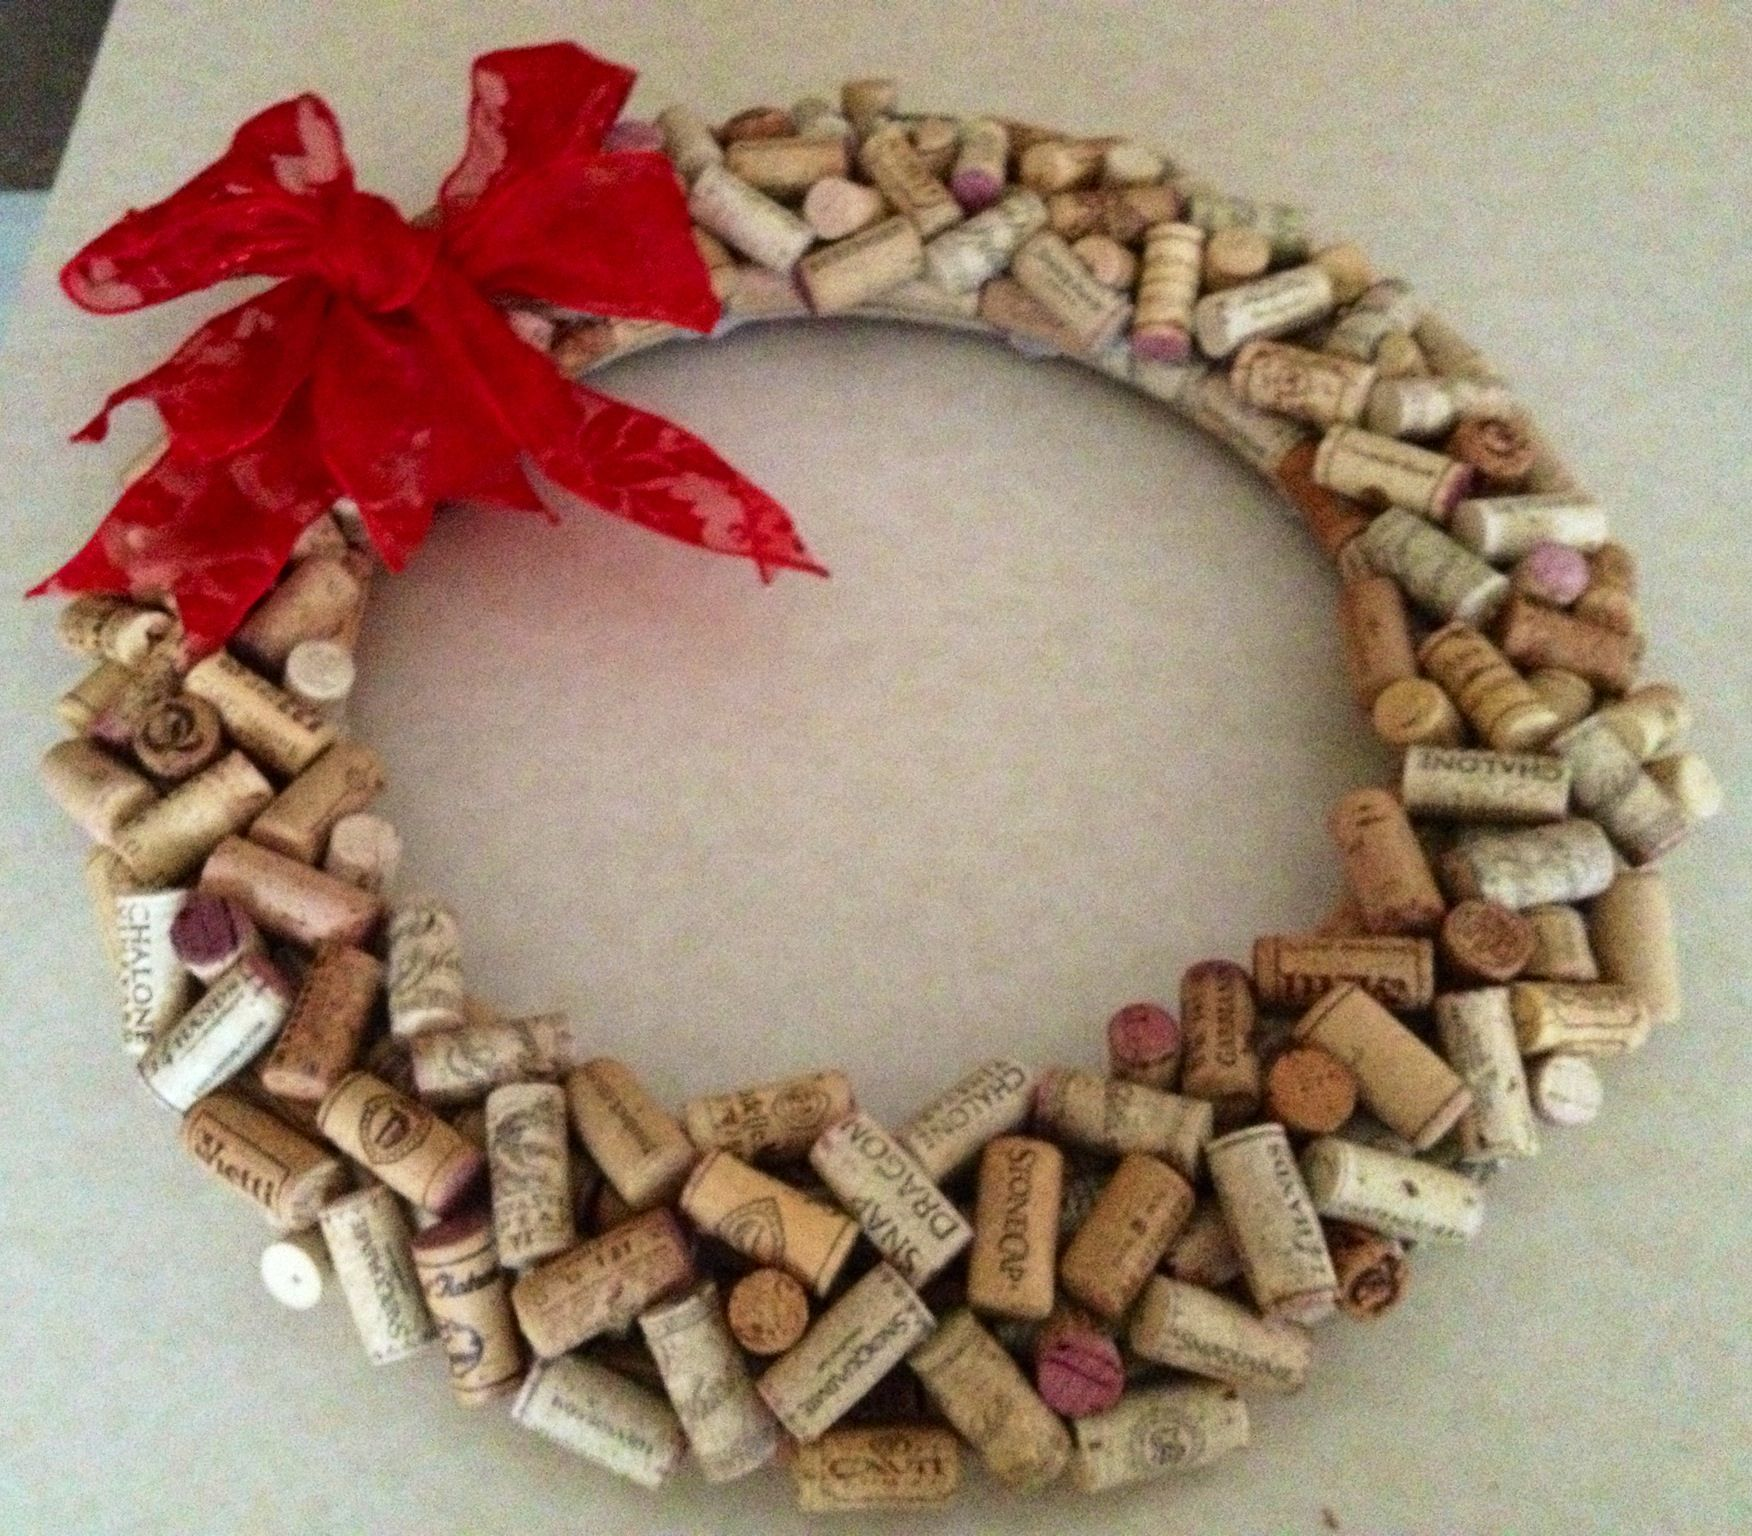 250+ wine corks later...  Wine Cork Wreath. I would love to make this for my grandma!